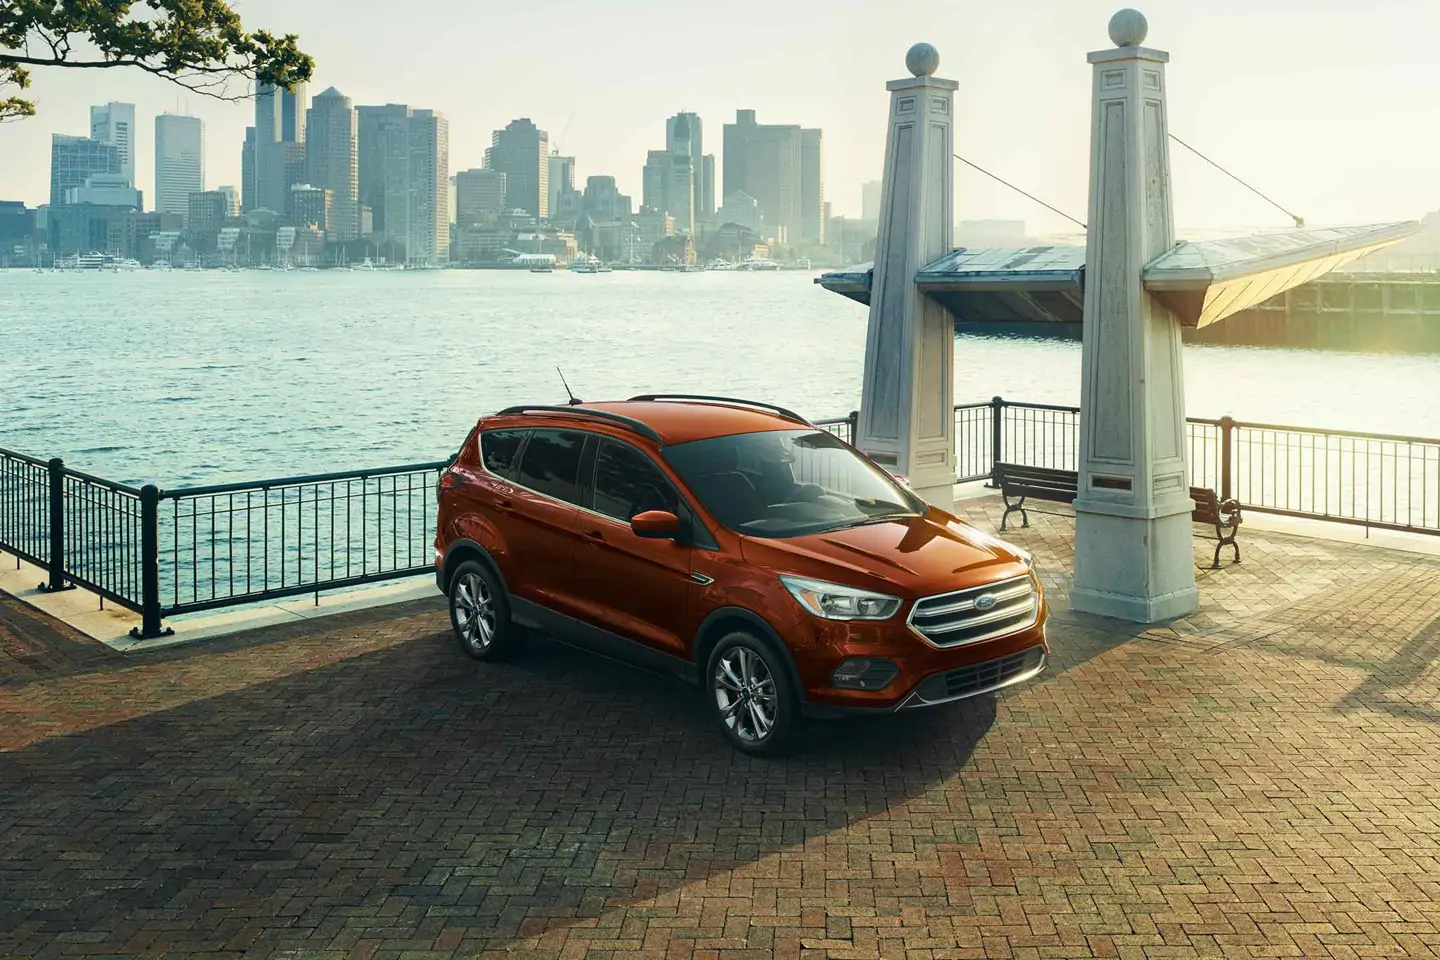 Roesch Ford has a large inventory of Ford vehicles in Bensenville, IL